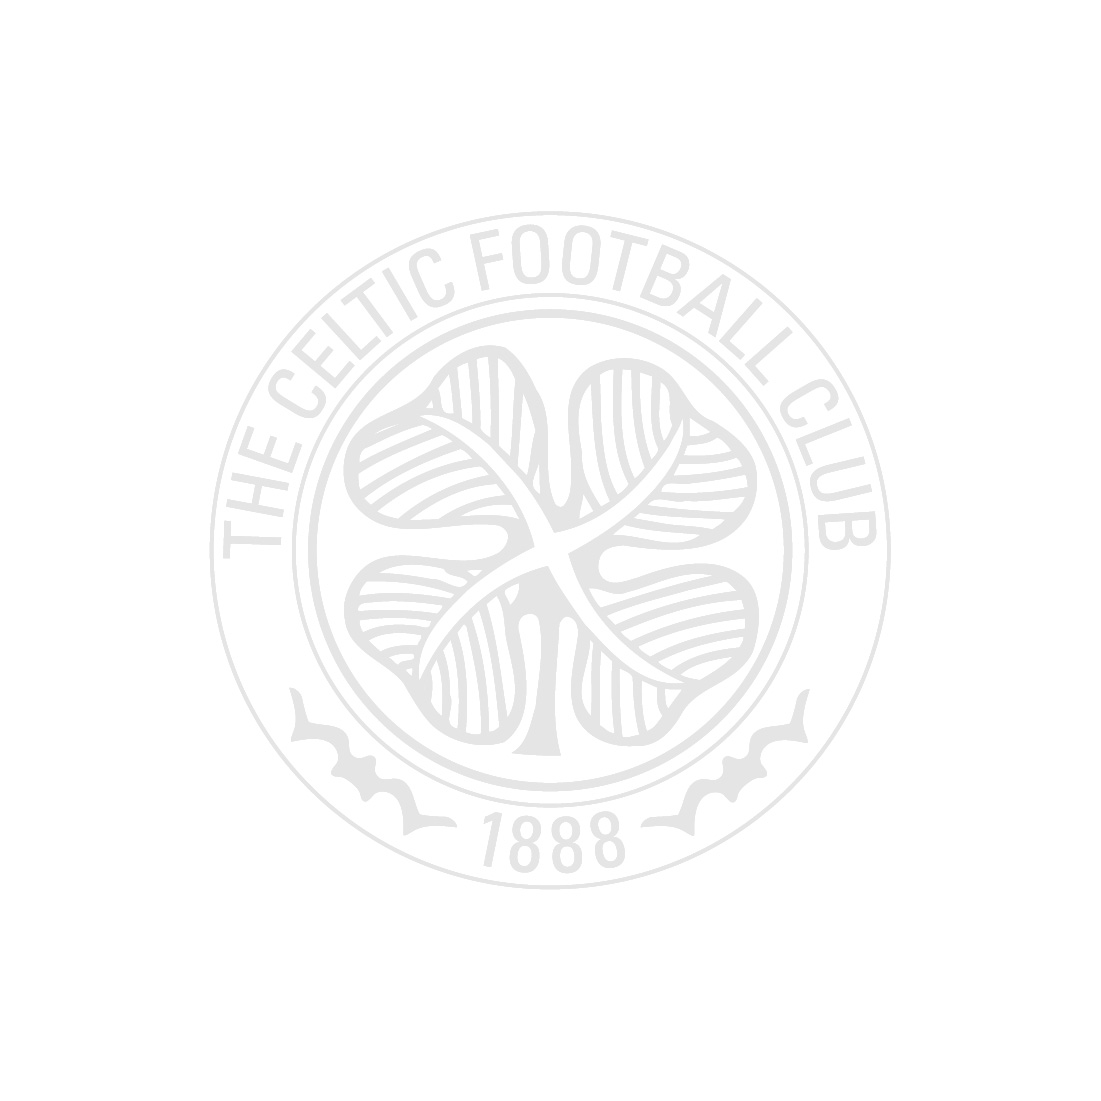 This Is How It Feels To Be Celtic T-shirt